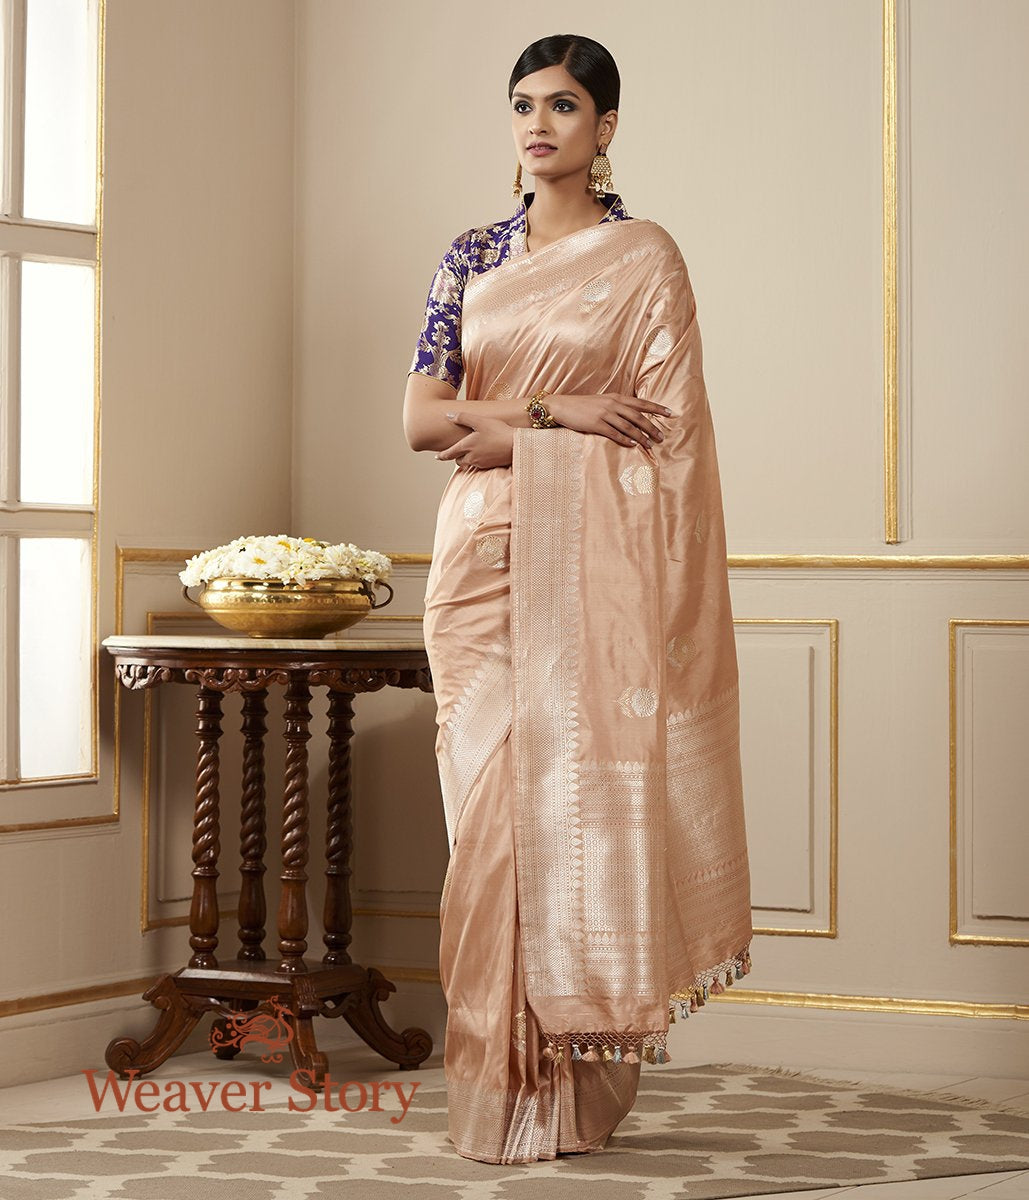 Handwoven Light Peach Saree with Gold Silver Flowers